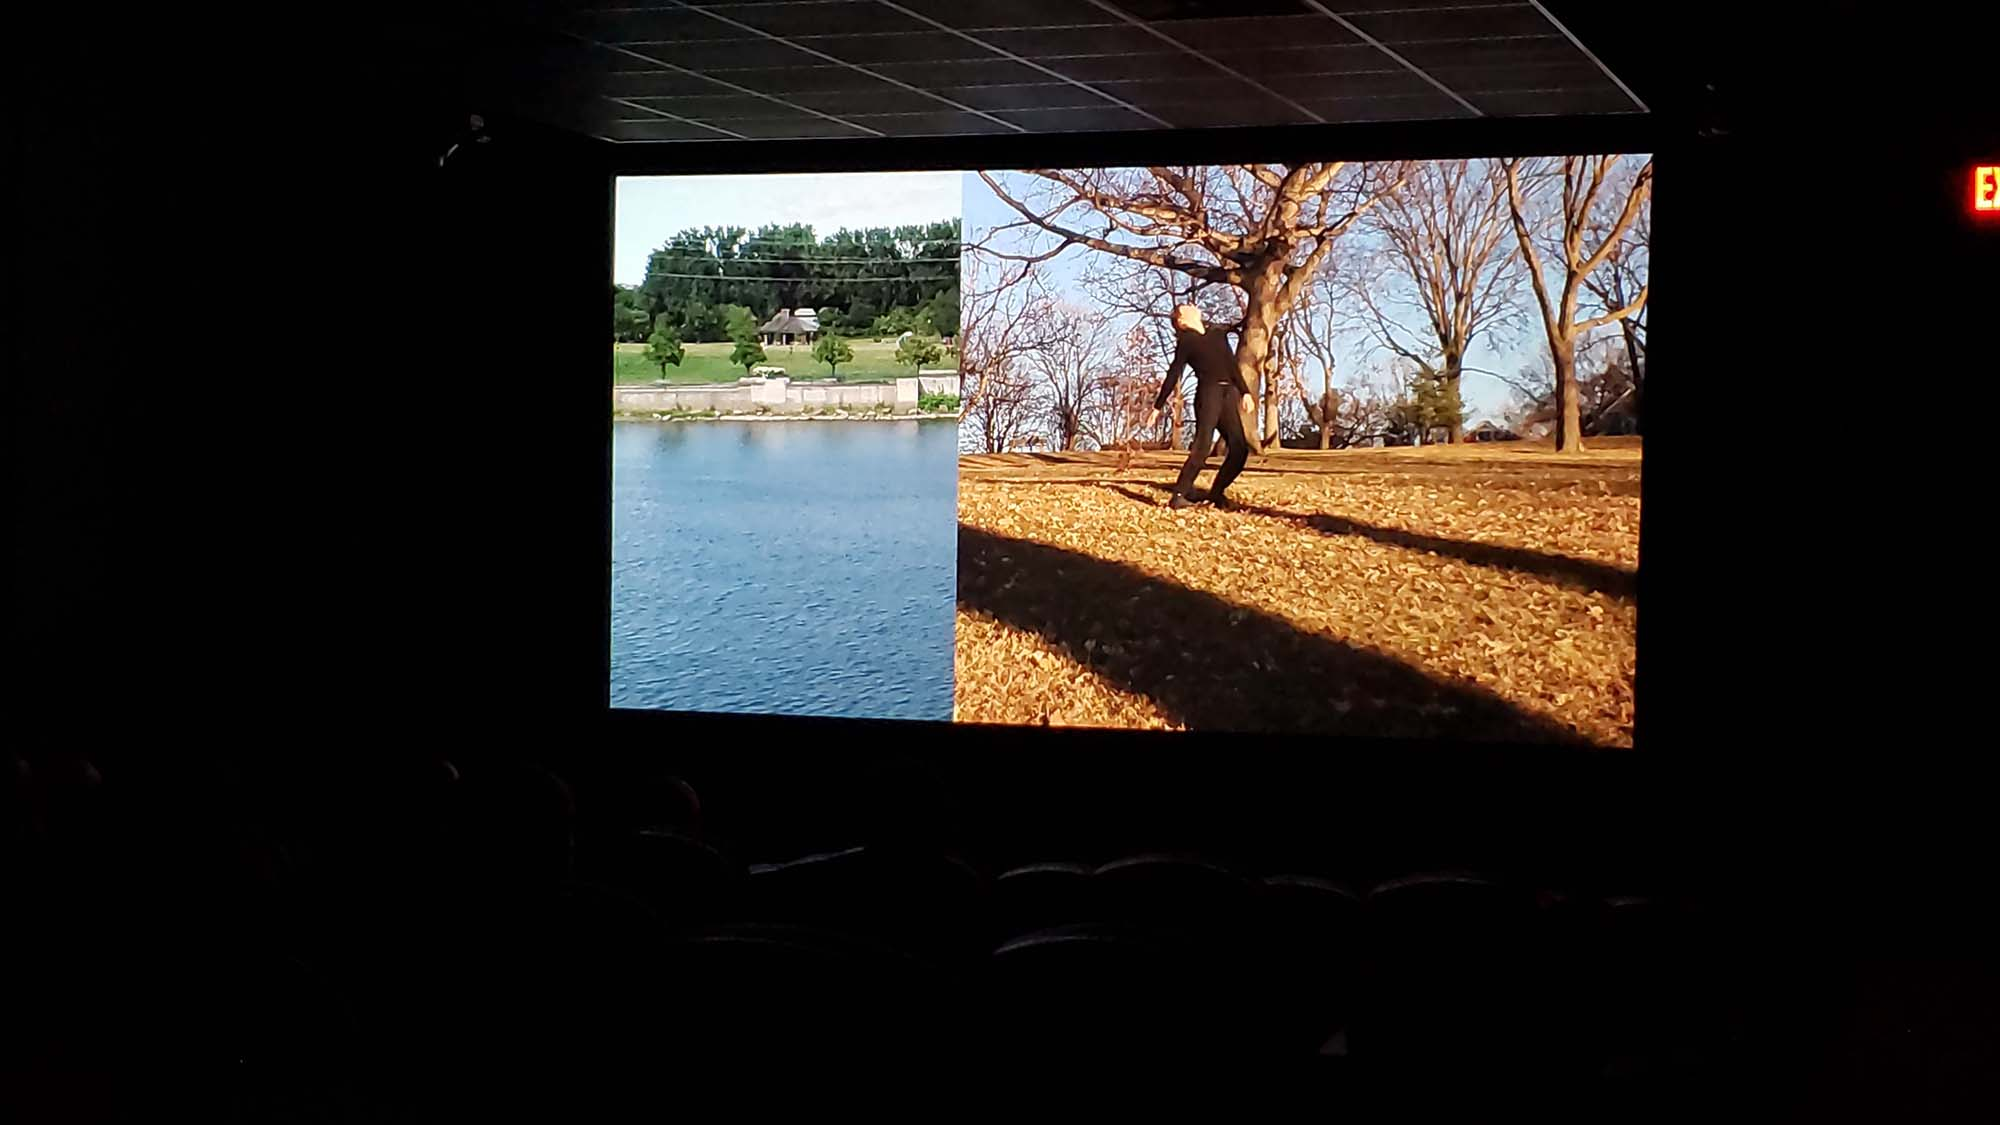 video projecting in movie theatre